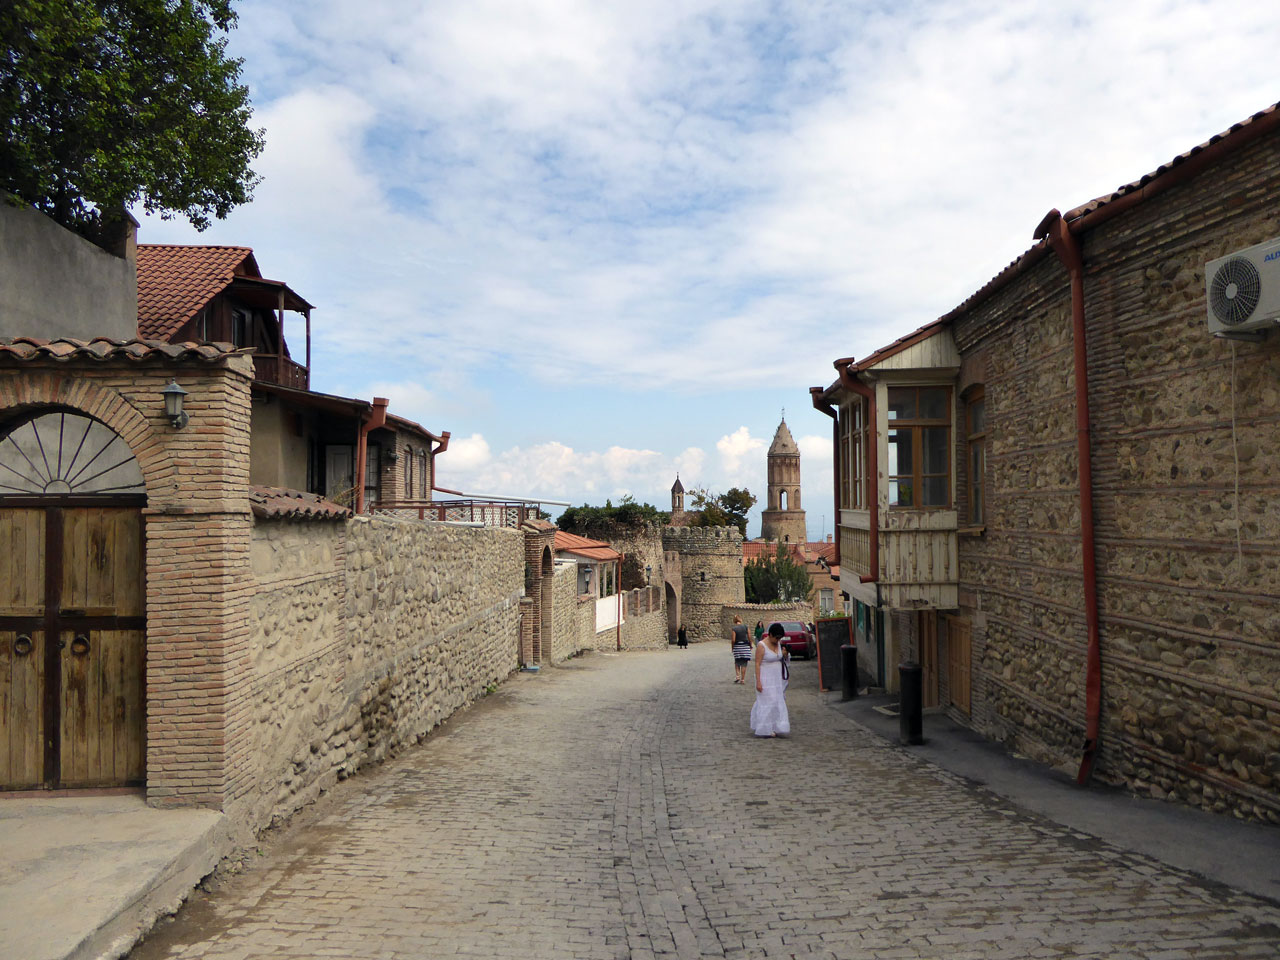 Street in Sighnaghi, Georgia